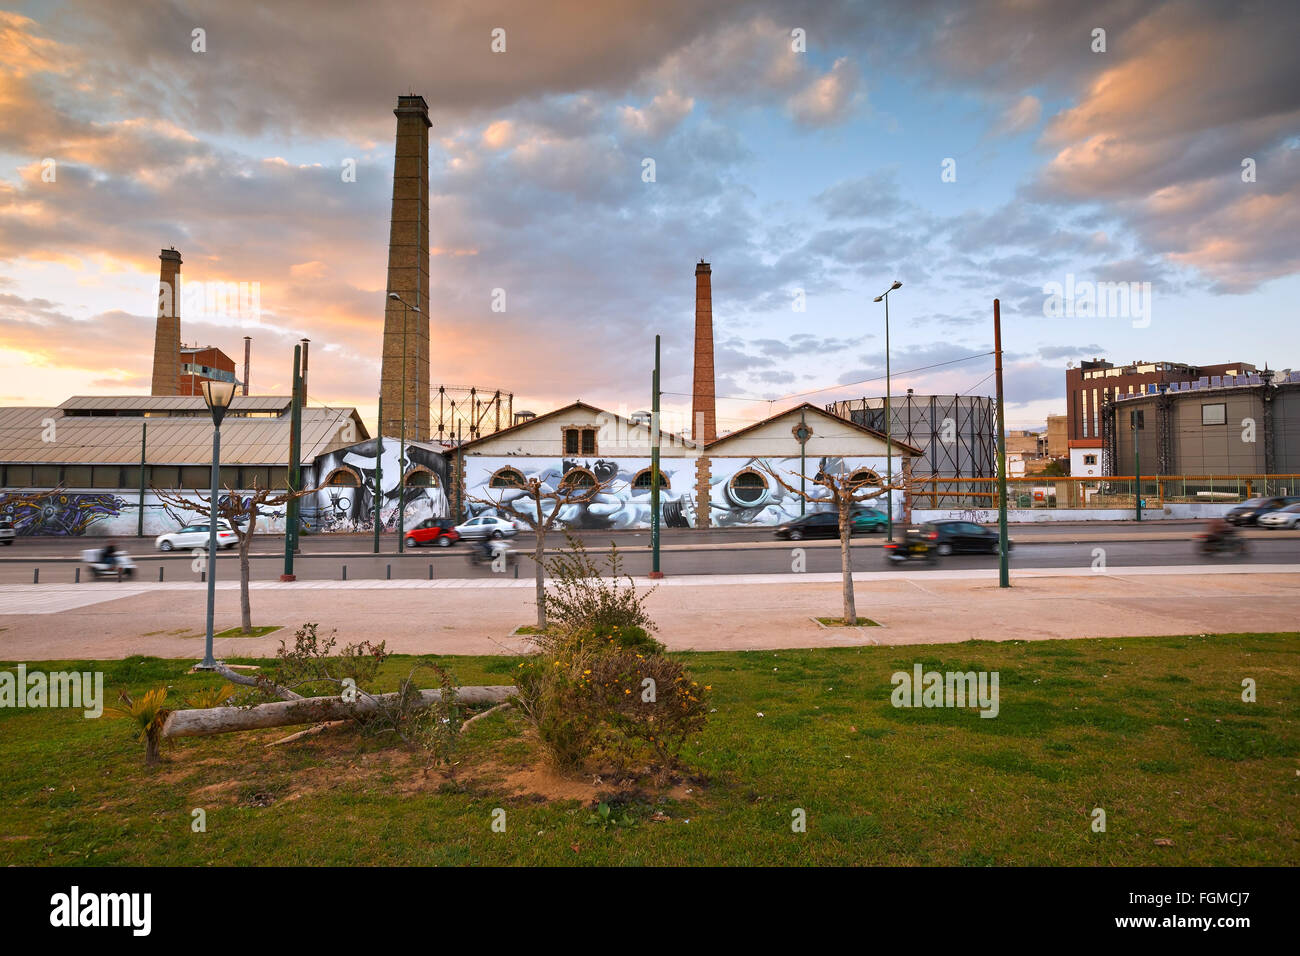 View of Technopolis, an industrial museum and a major cultural venue on the premises of former gasworks of the  - Stock Image